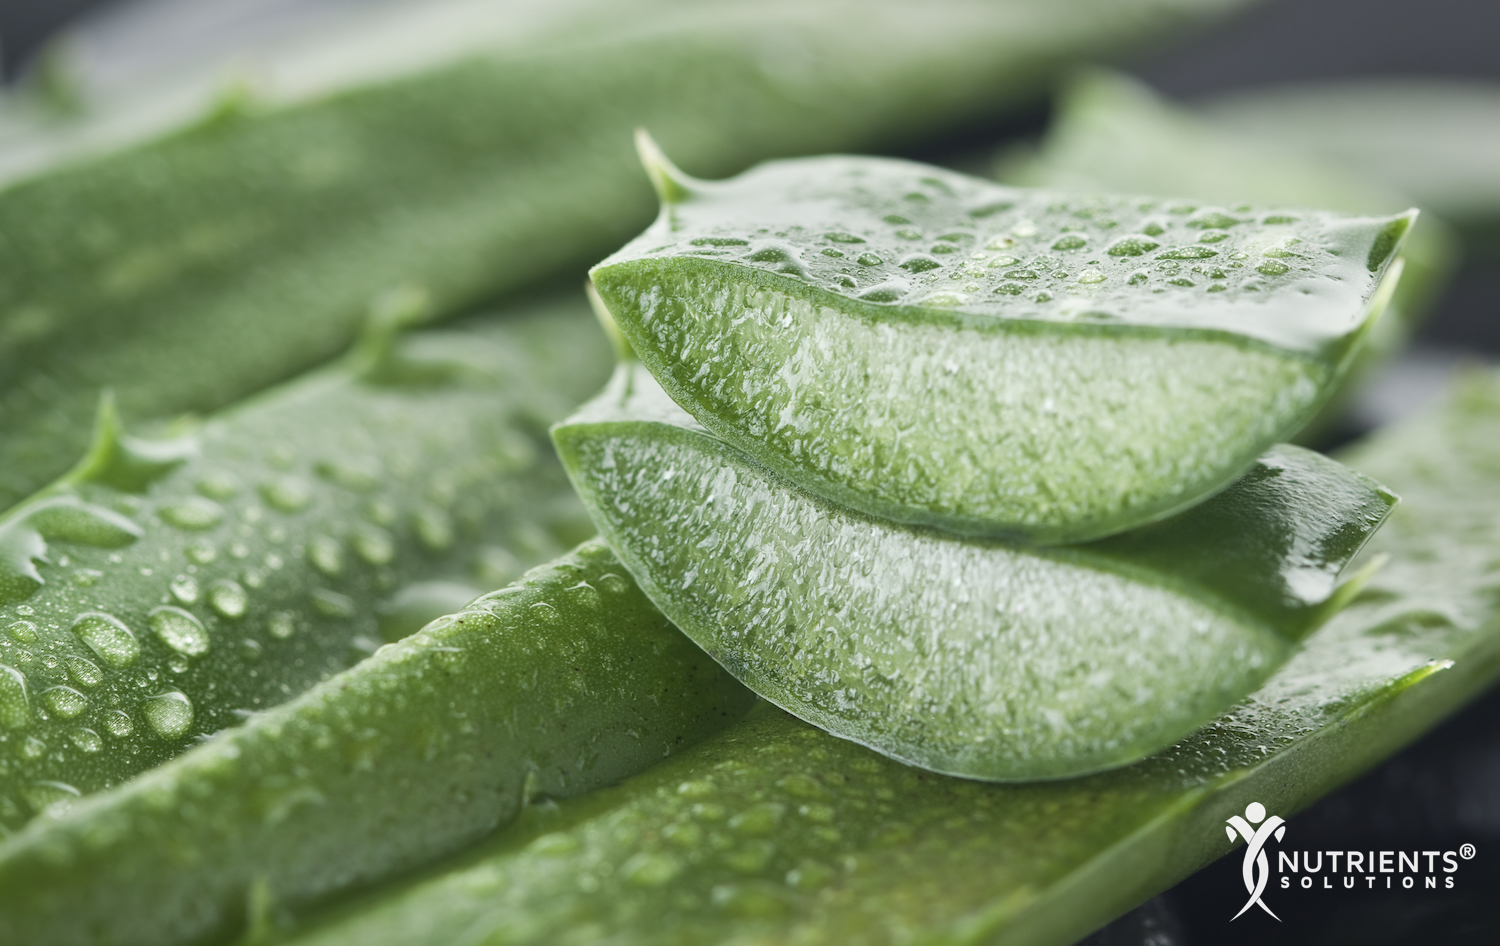 Discover the Benefits of Aloe Vera